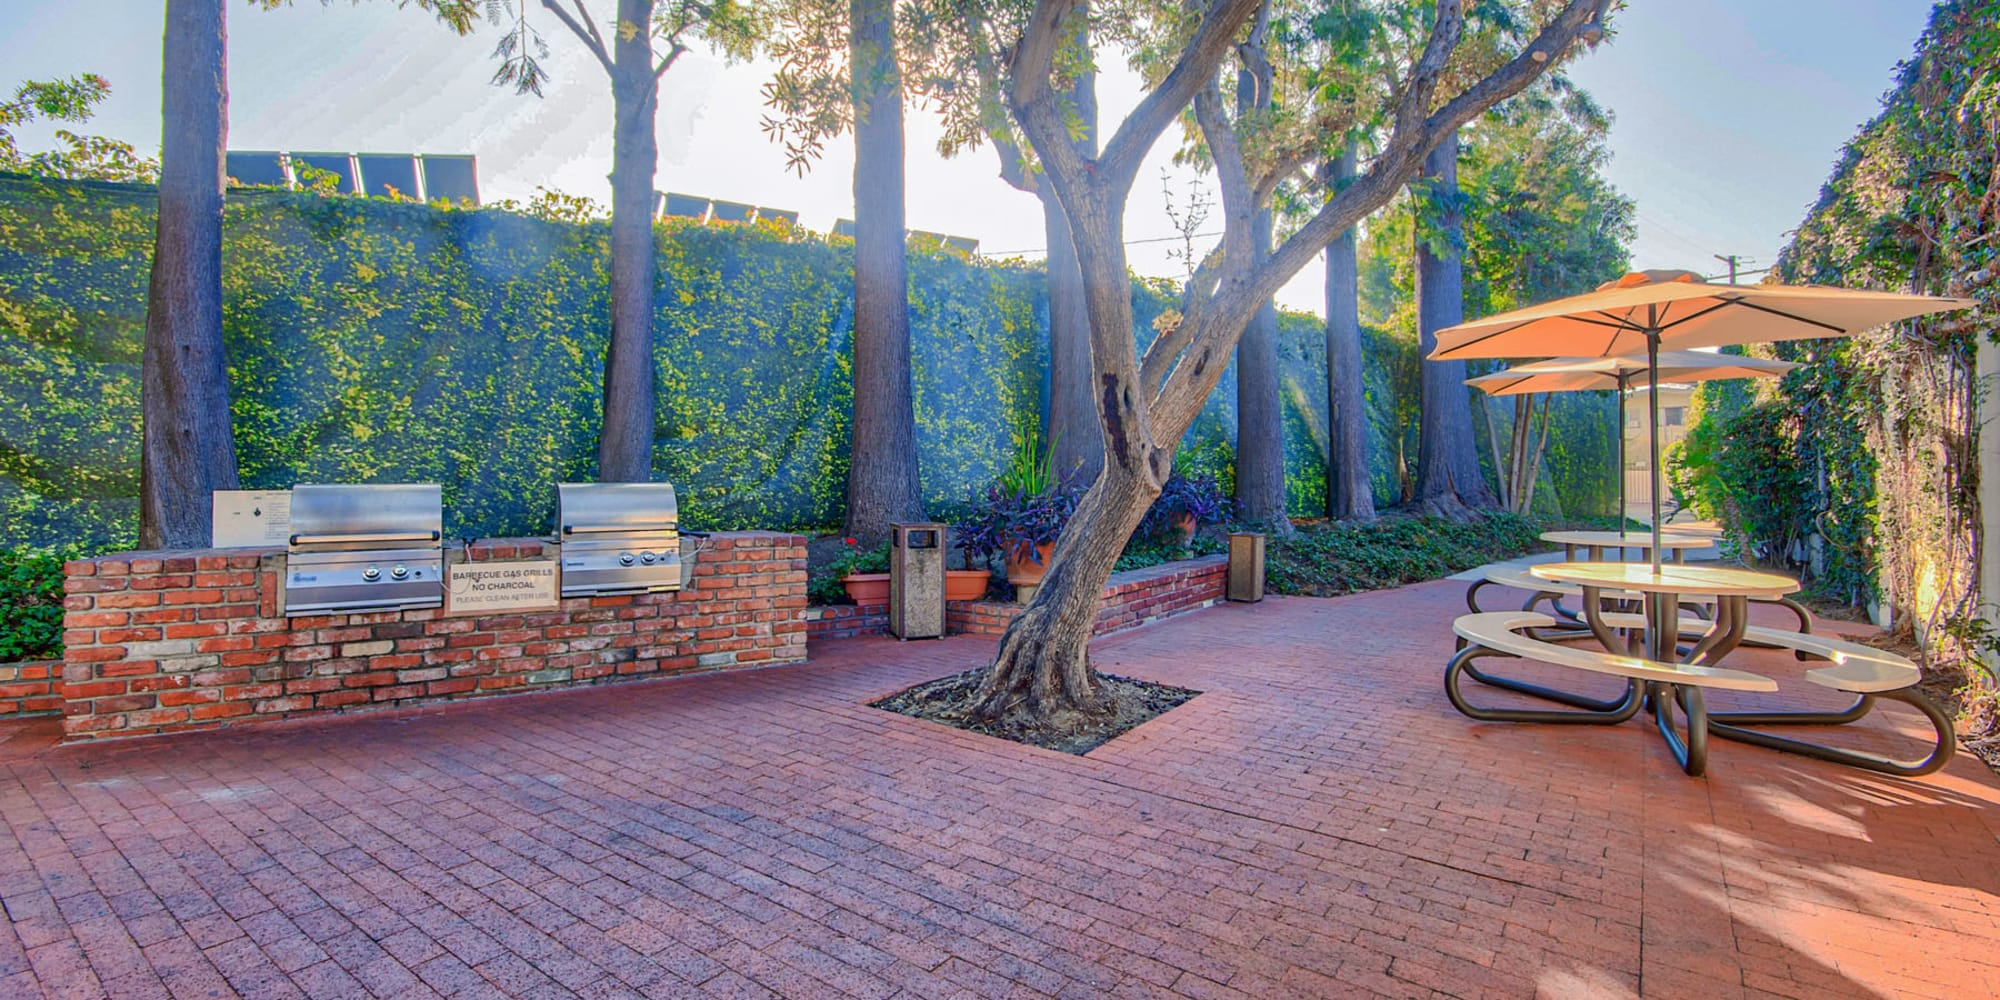 Barbecue area with gas grills and a brick courtyard at Villa Vicente in Los Angeles, California